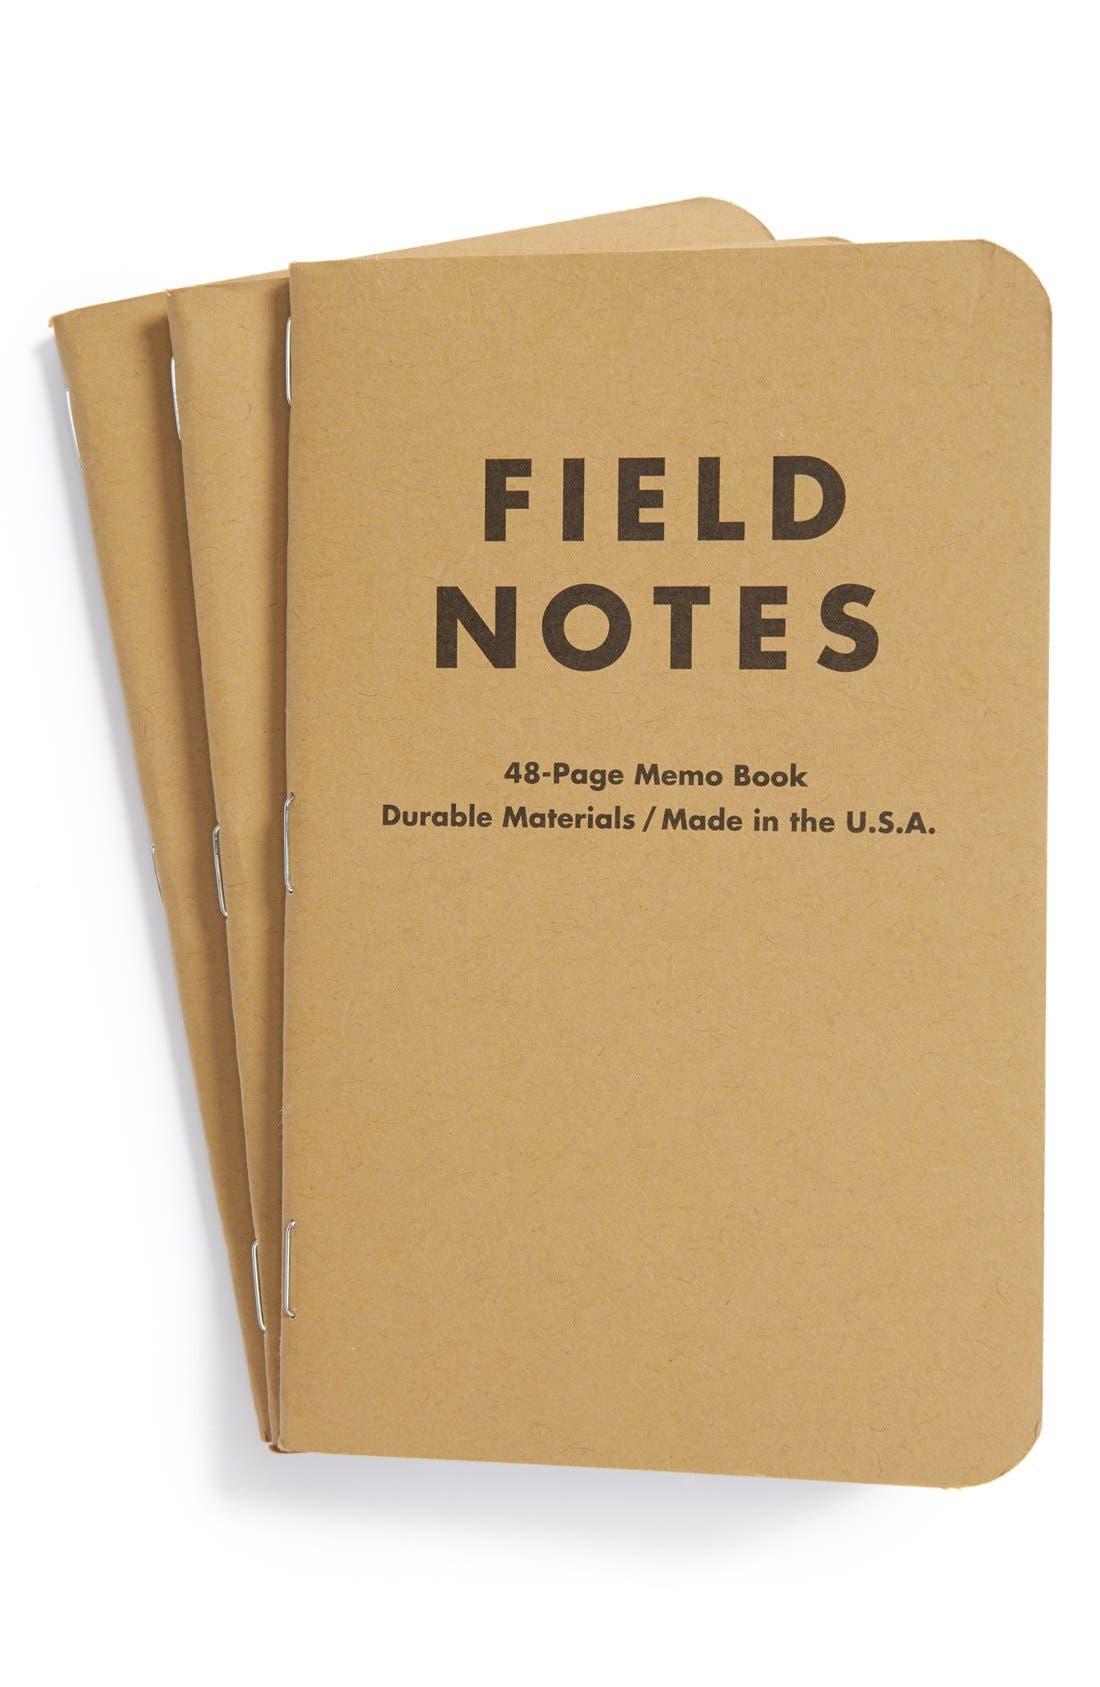 Alternate Image 1 Selected - Field Notes Blank Memo Books (3-Pack)